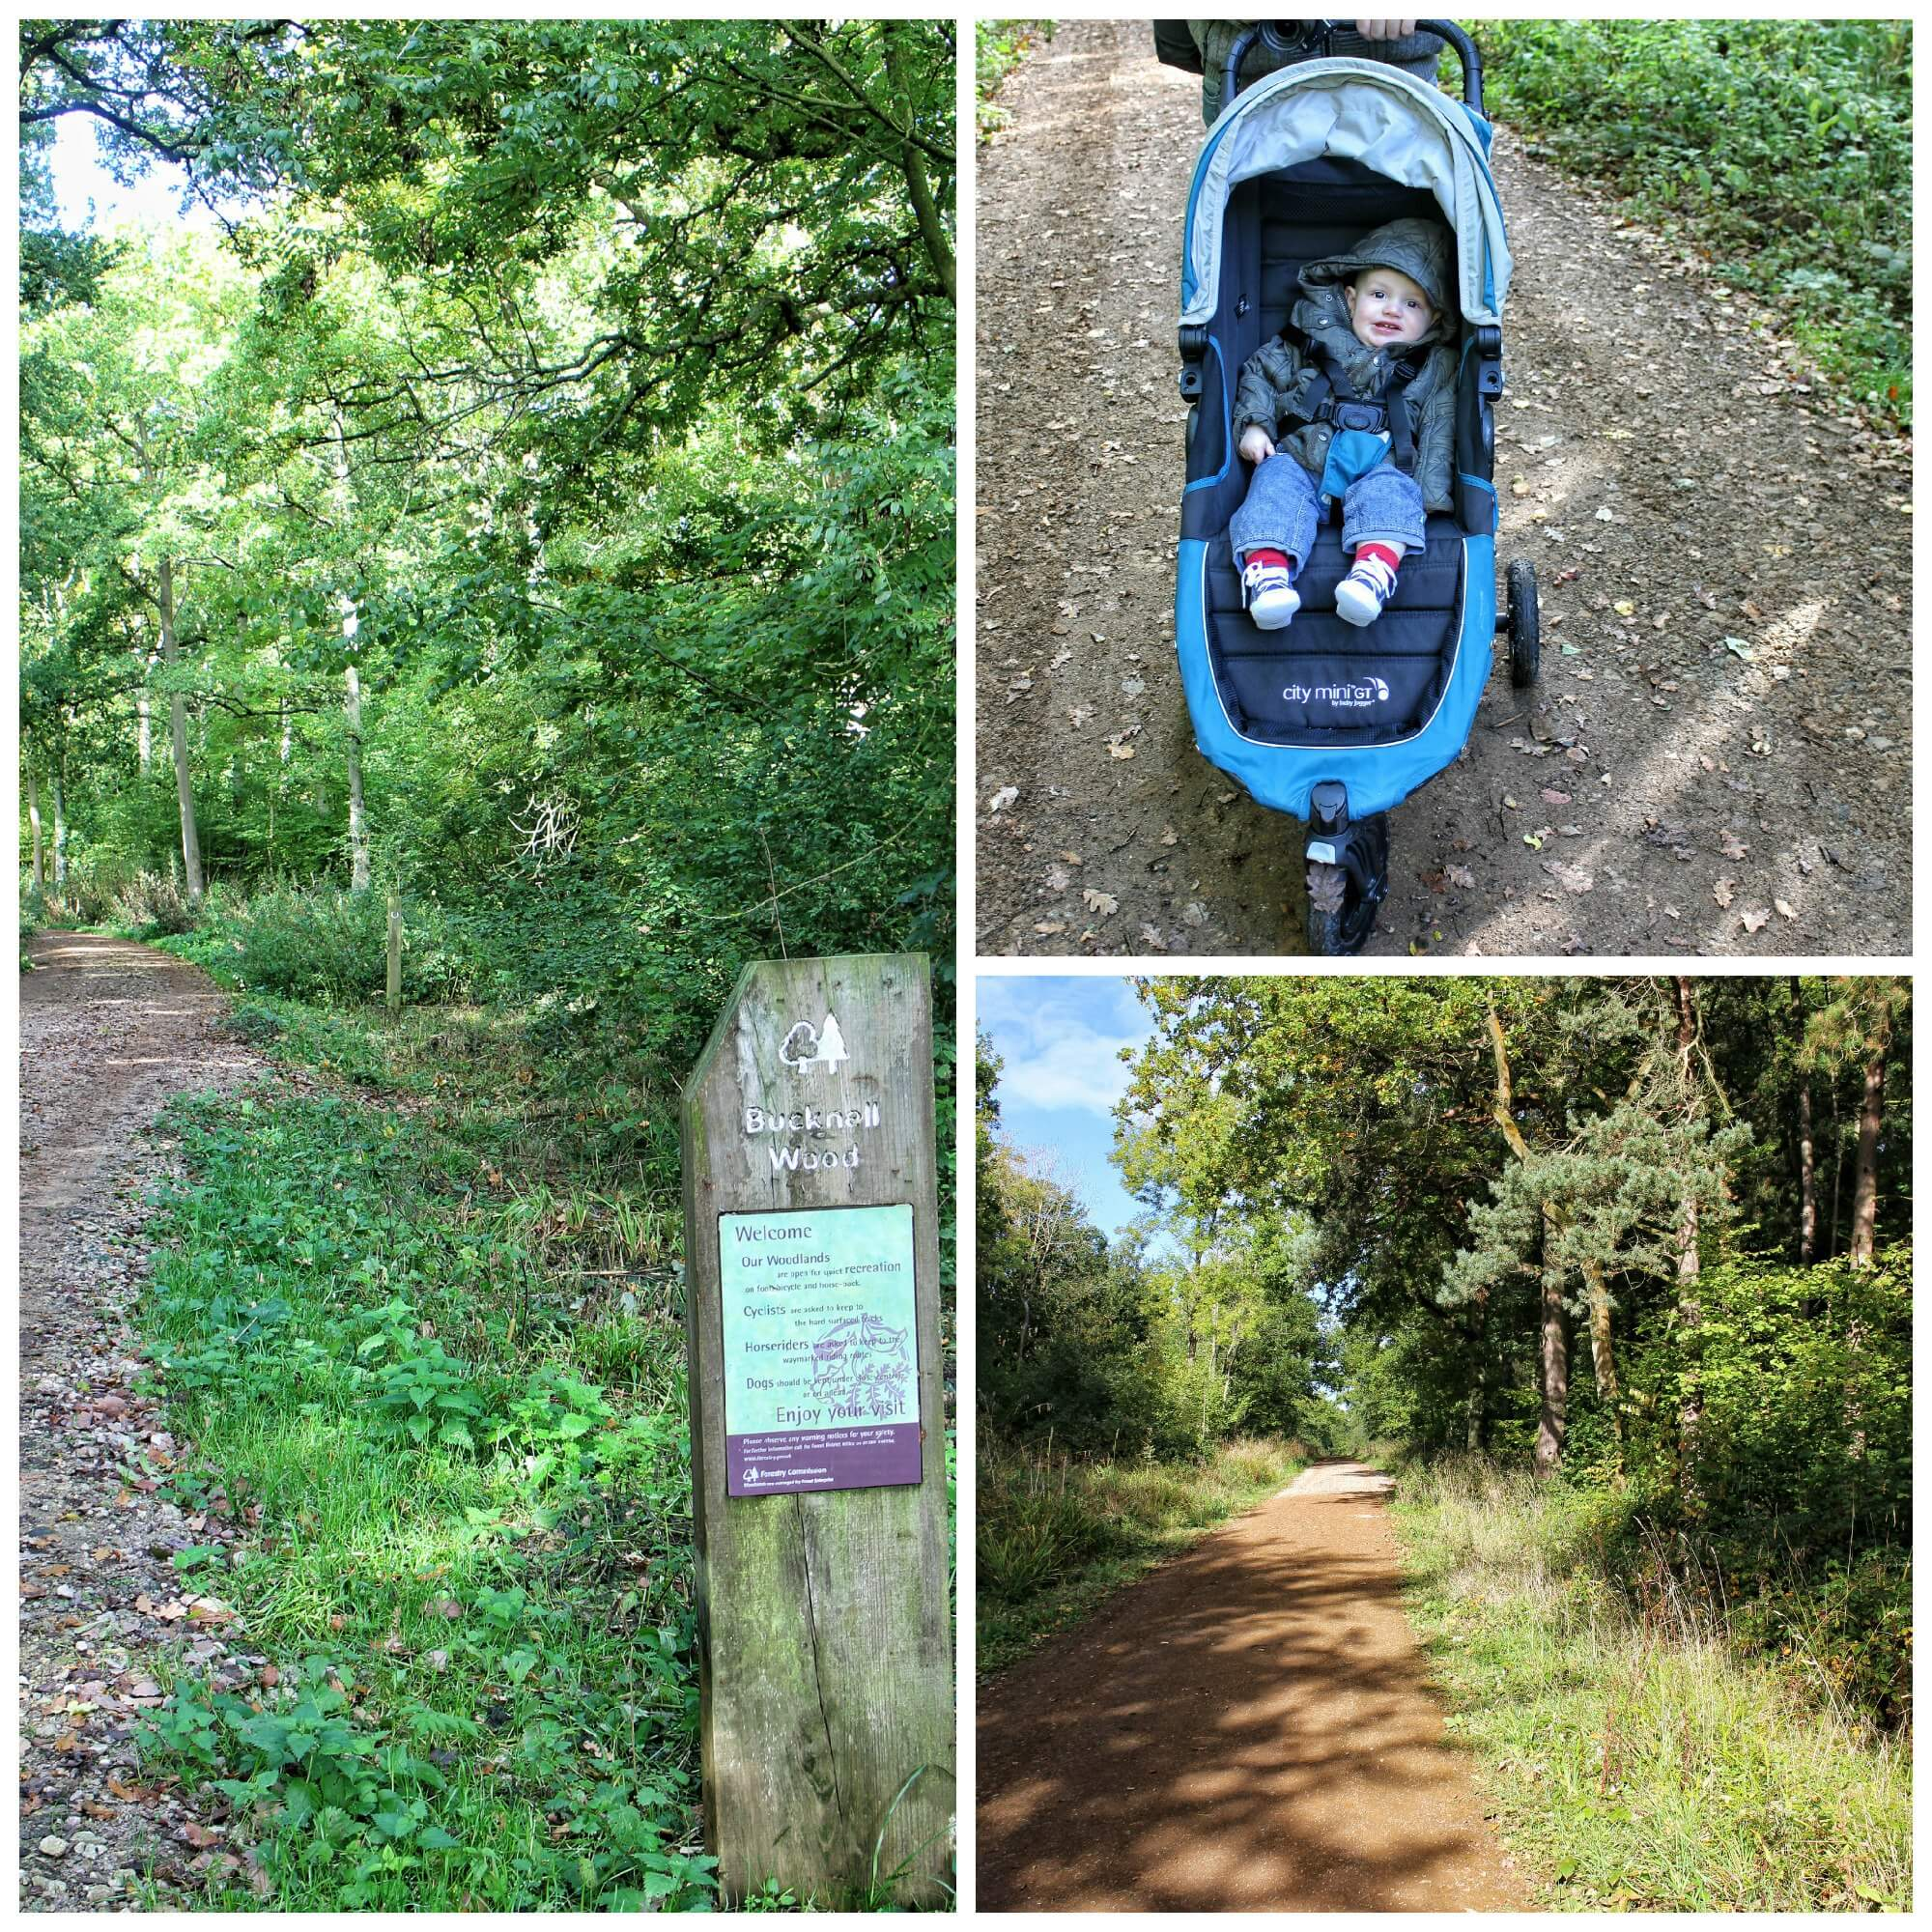 We took the pushchair so kept to the main path (to begin with!)